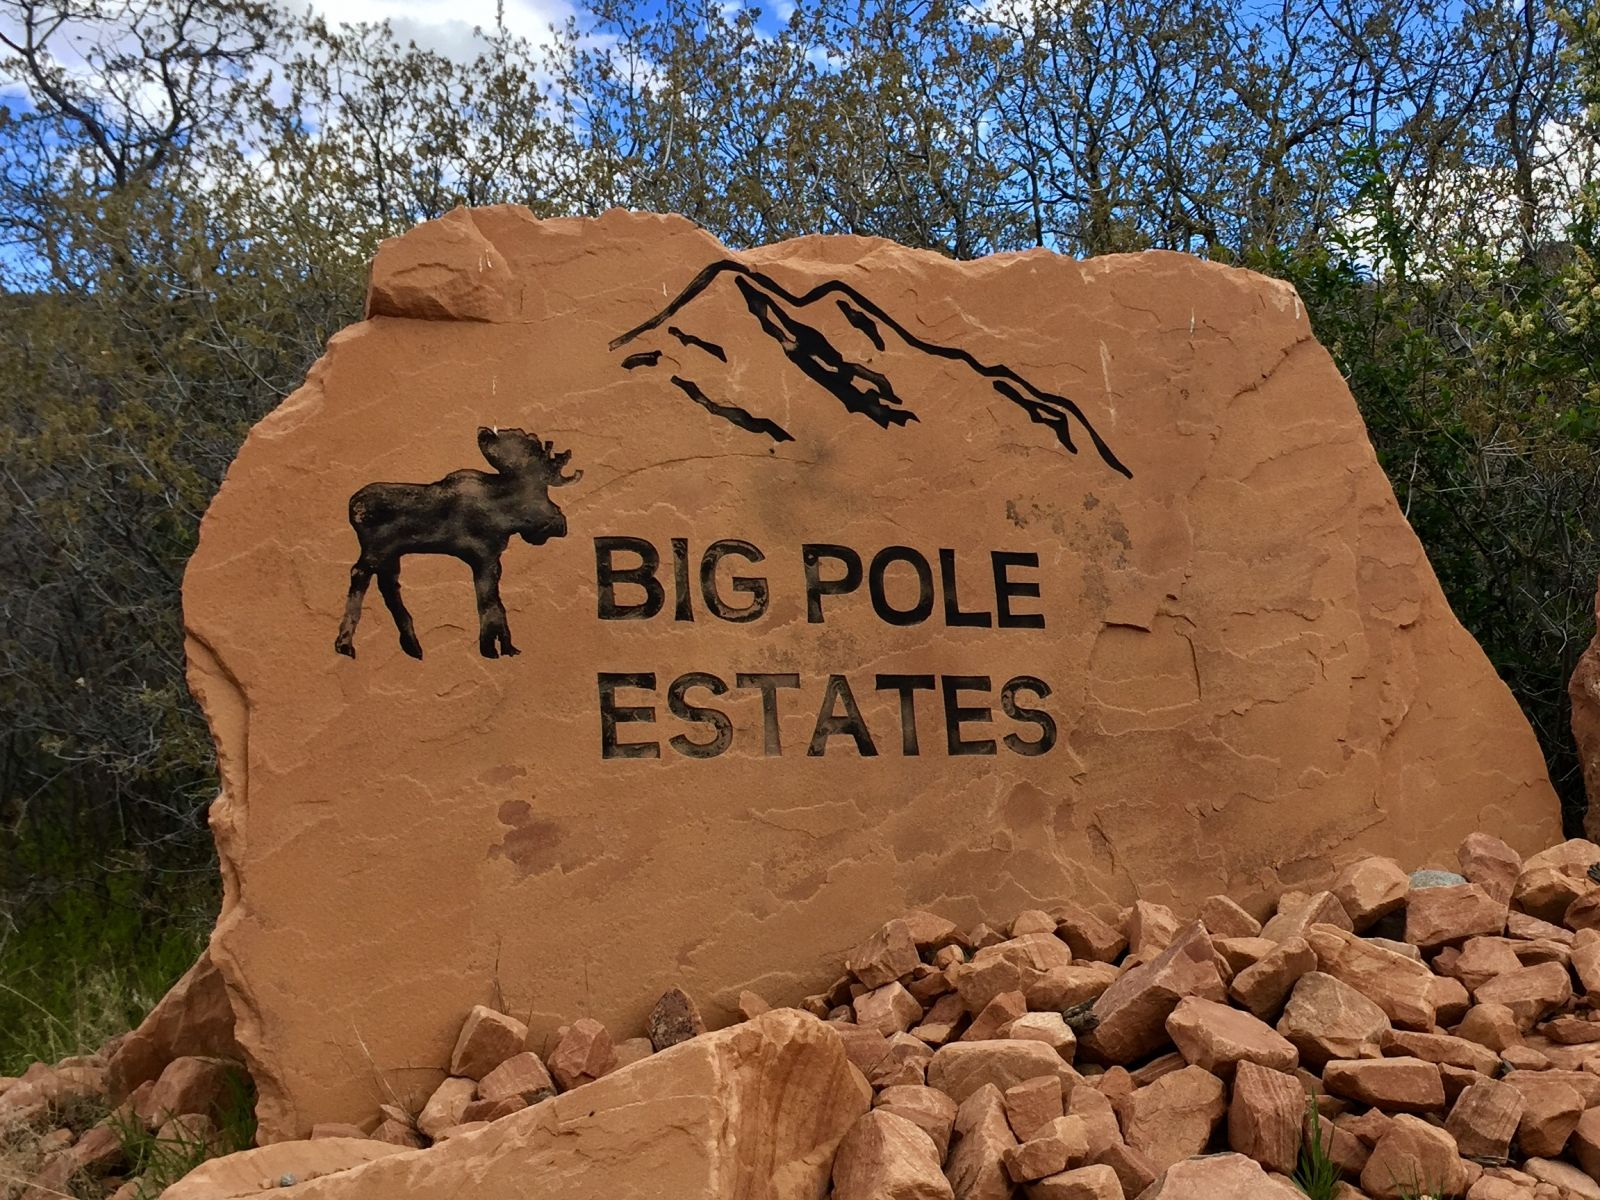 Big Pole Estates Real Estate for Sale